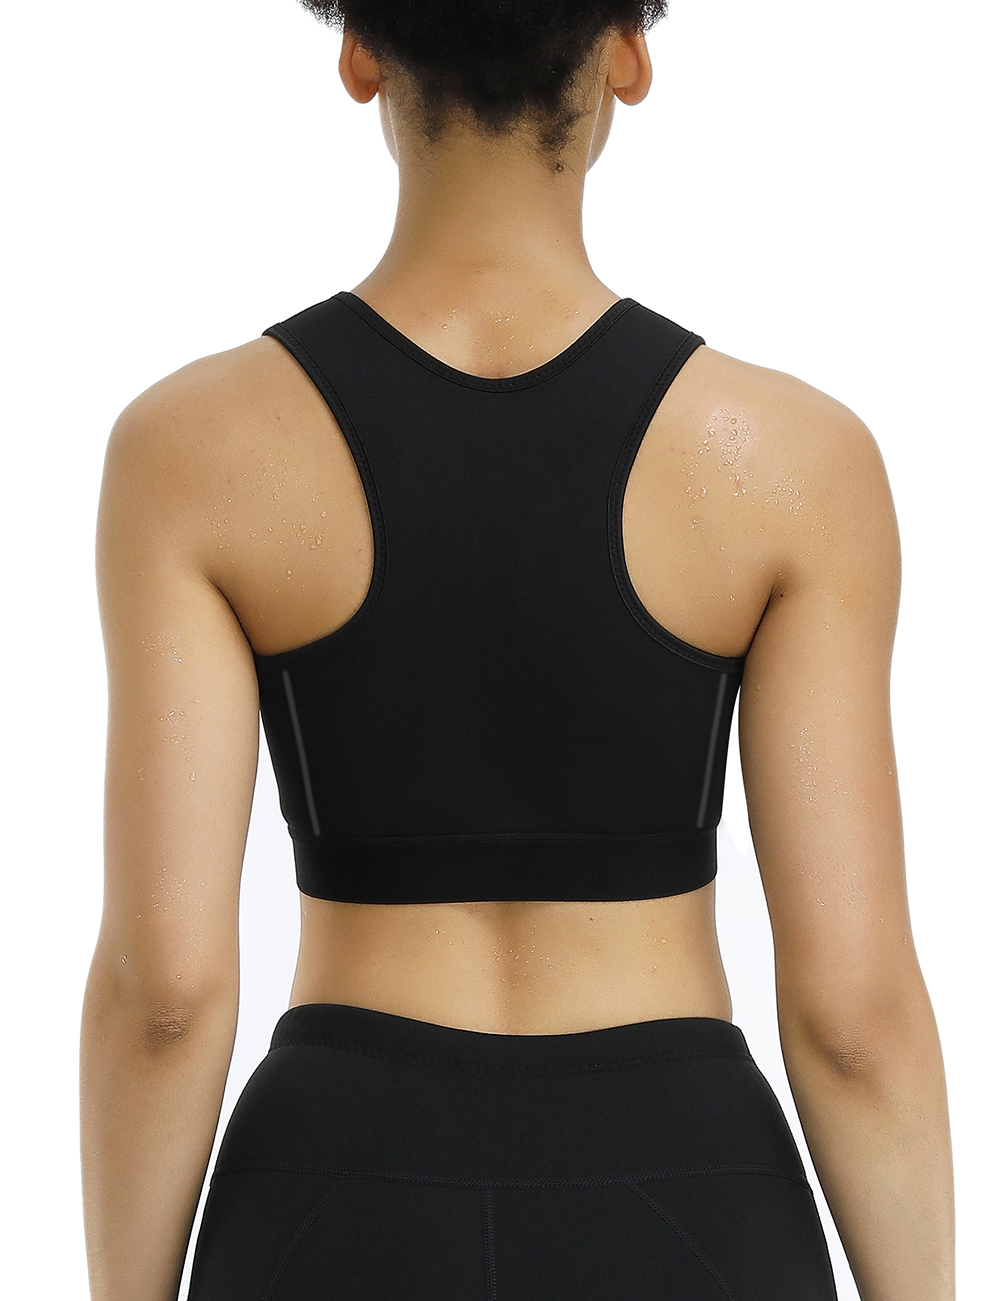 //cdn.affectcloud.com/hexinfashion/upload/imgs/Shapewear/Neoprene_Shaper/MT190054-BK1/MT190054-BK1-201911275dddee6387df7.jpg